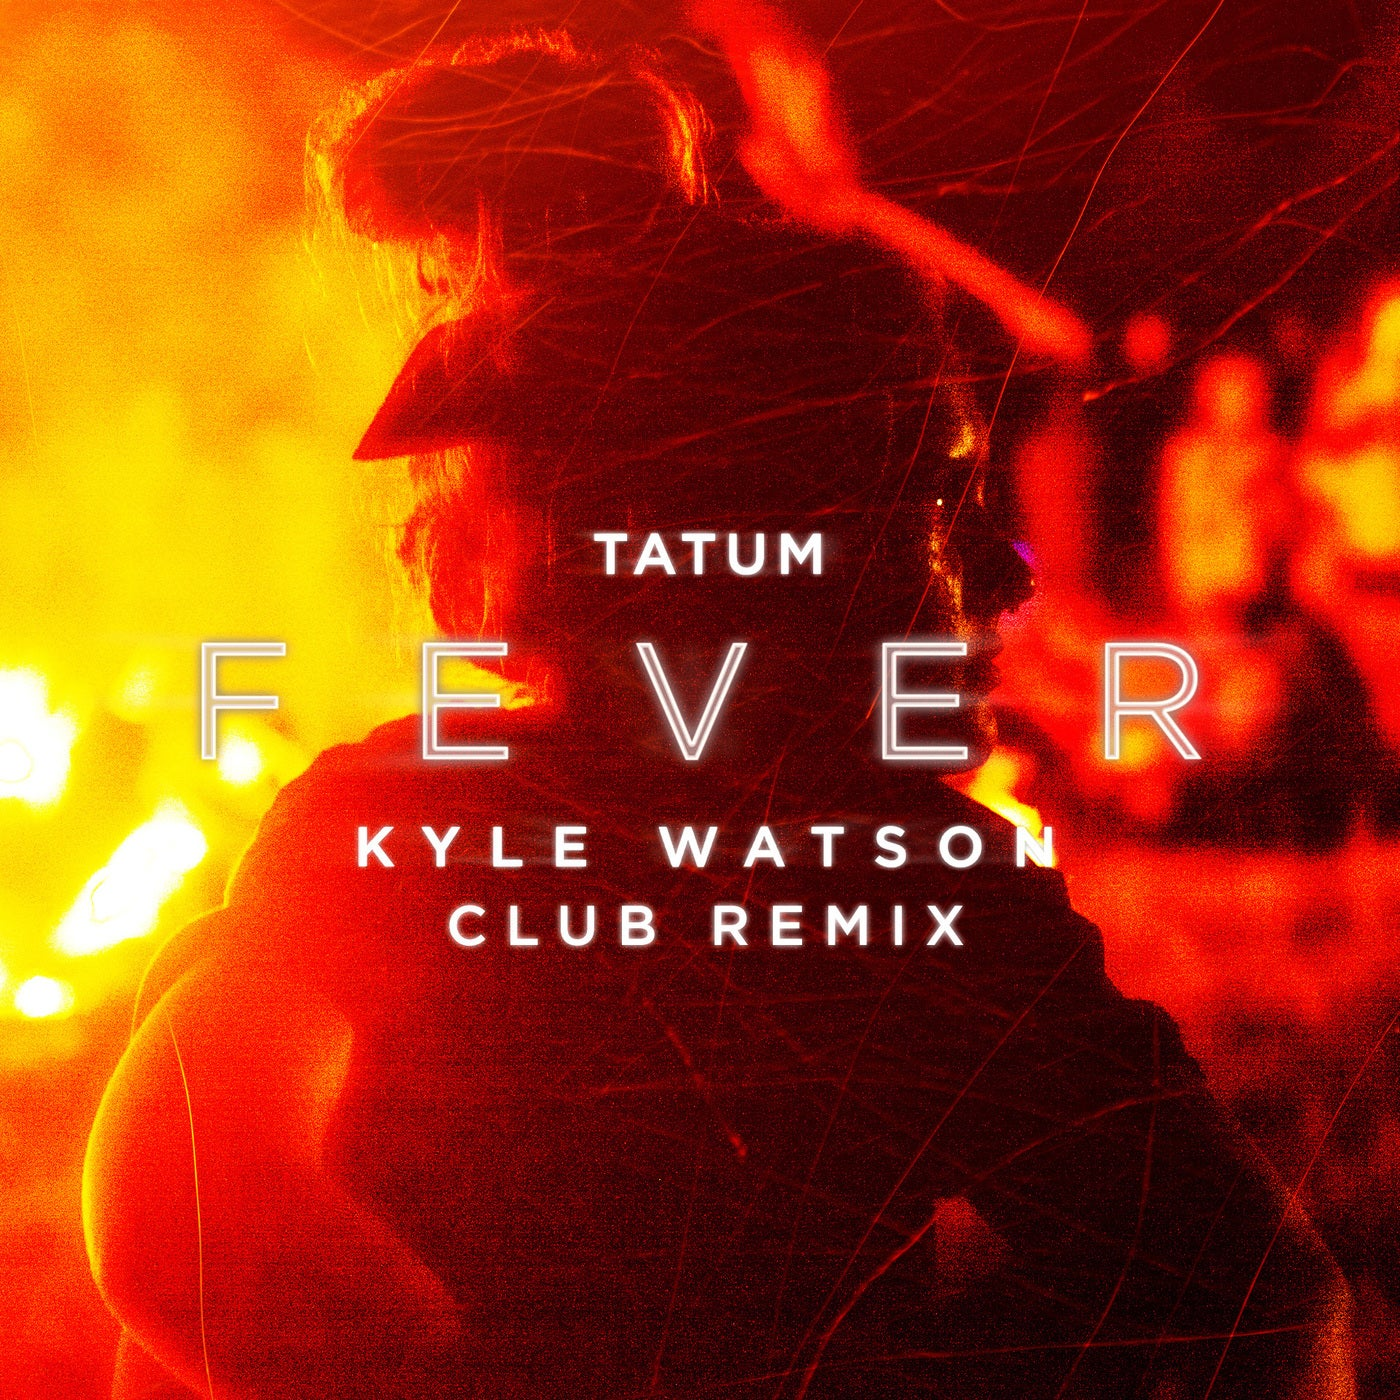 Fever (Kyle Watson Club Remix [Extended Version])